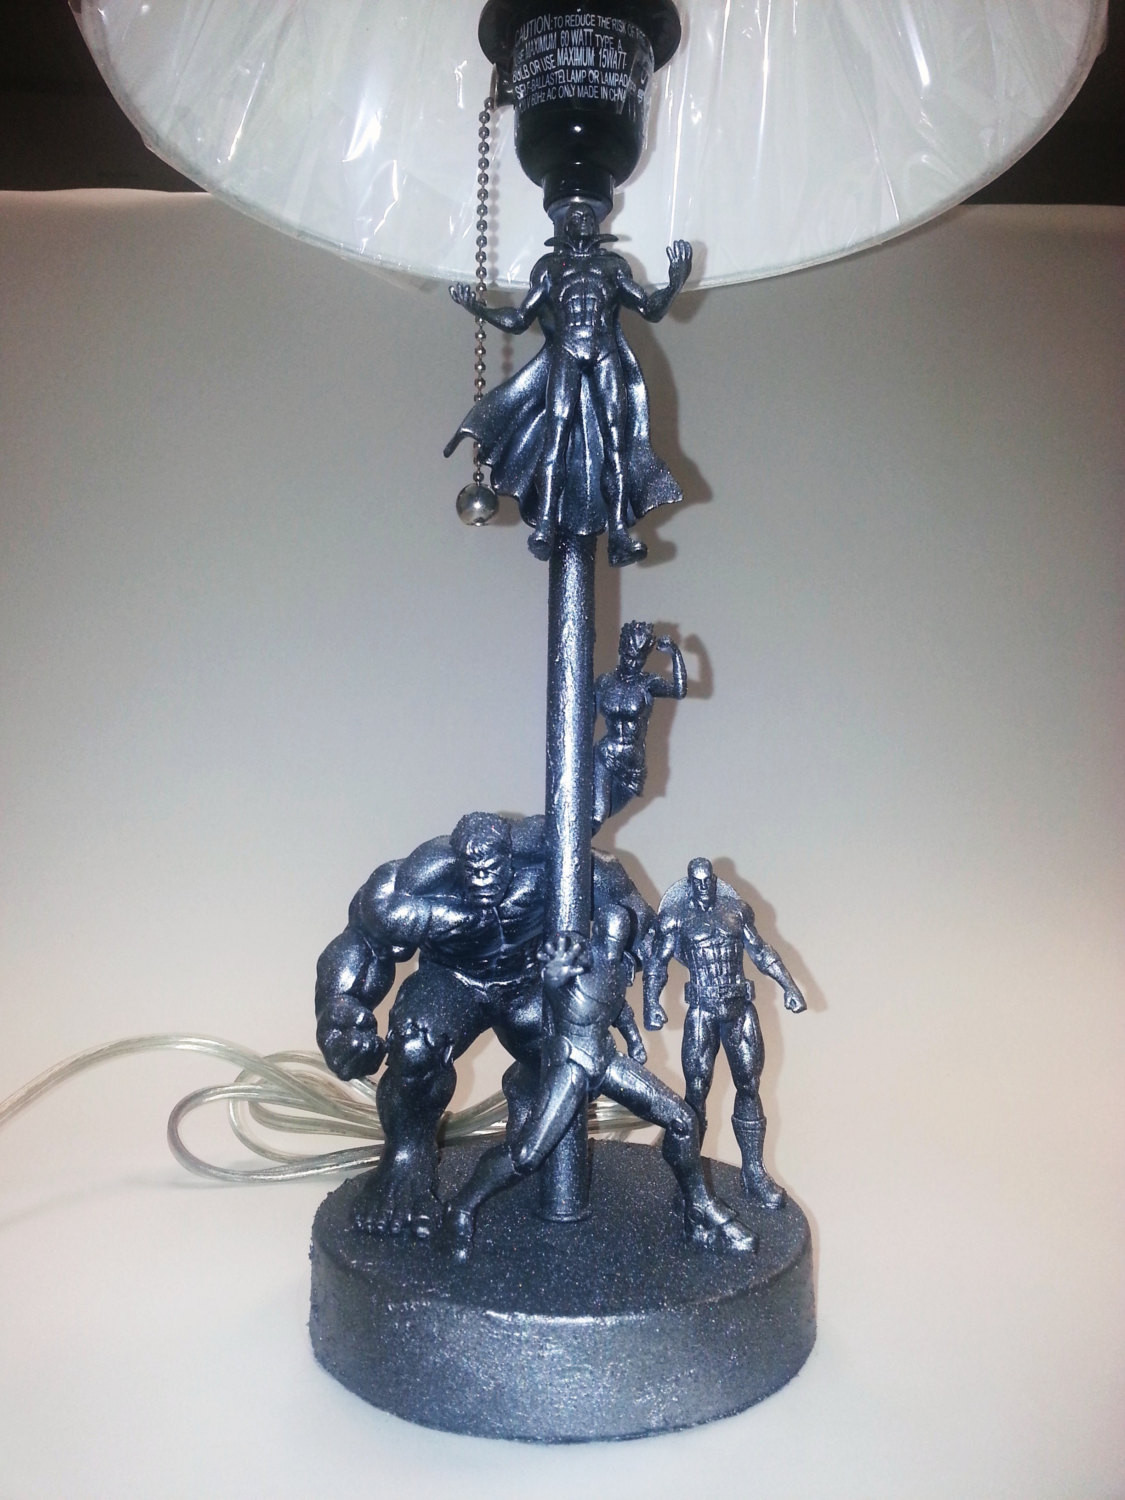 Best ideas about Unique Desk Lamp . Save or Pin Toy Lamp Marvel Avengers Lamp Desk Lamp Unique Table Now.